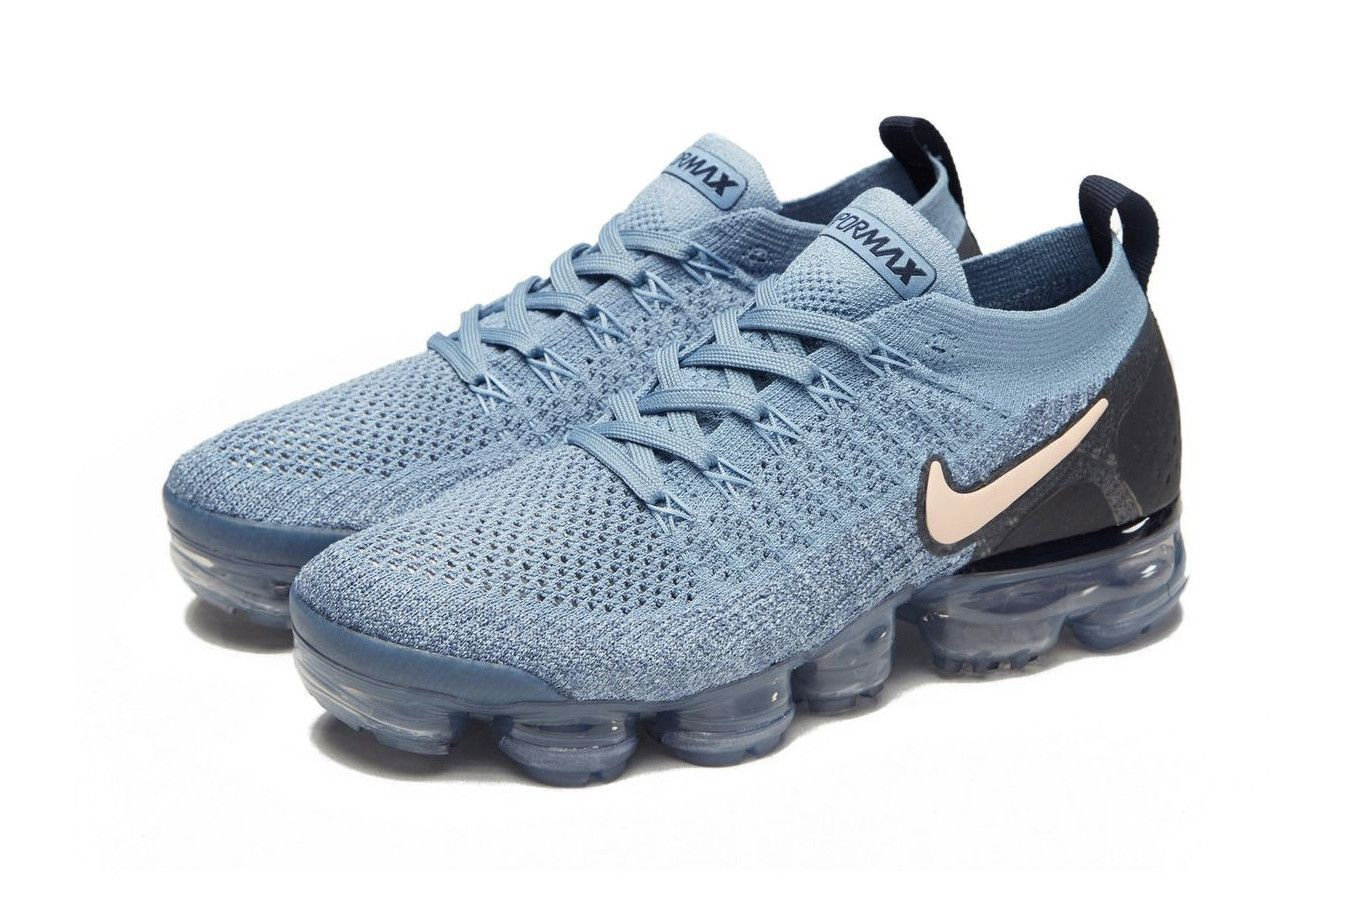 reputable site 0f9c8 c4f95 Nike Drops Air VaporMax Flyknit 2.0 in Baby Blue Light Blue Womens Sneaker